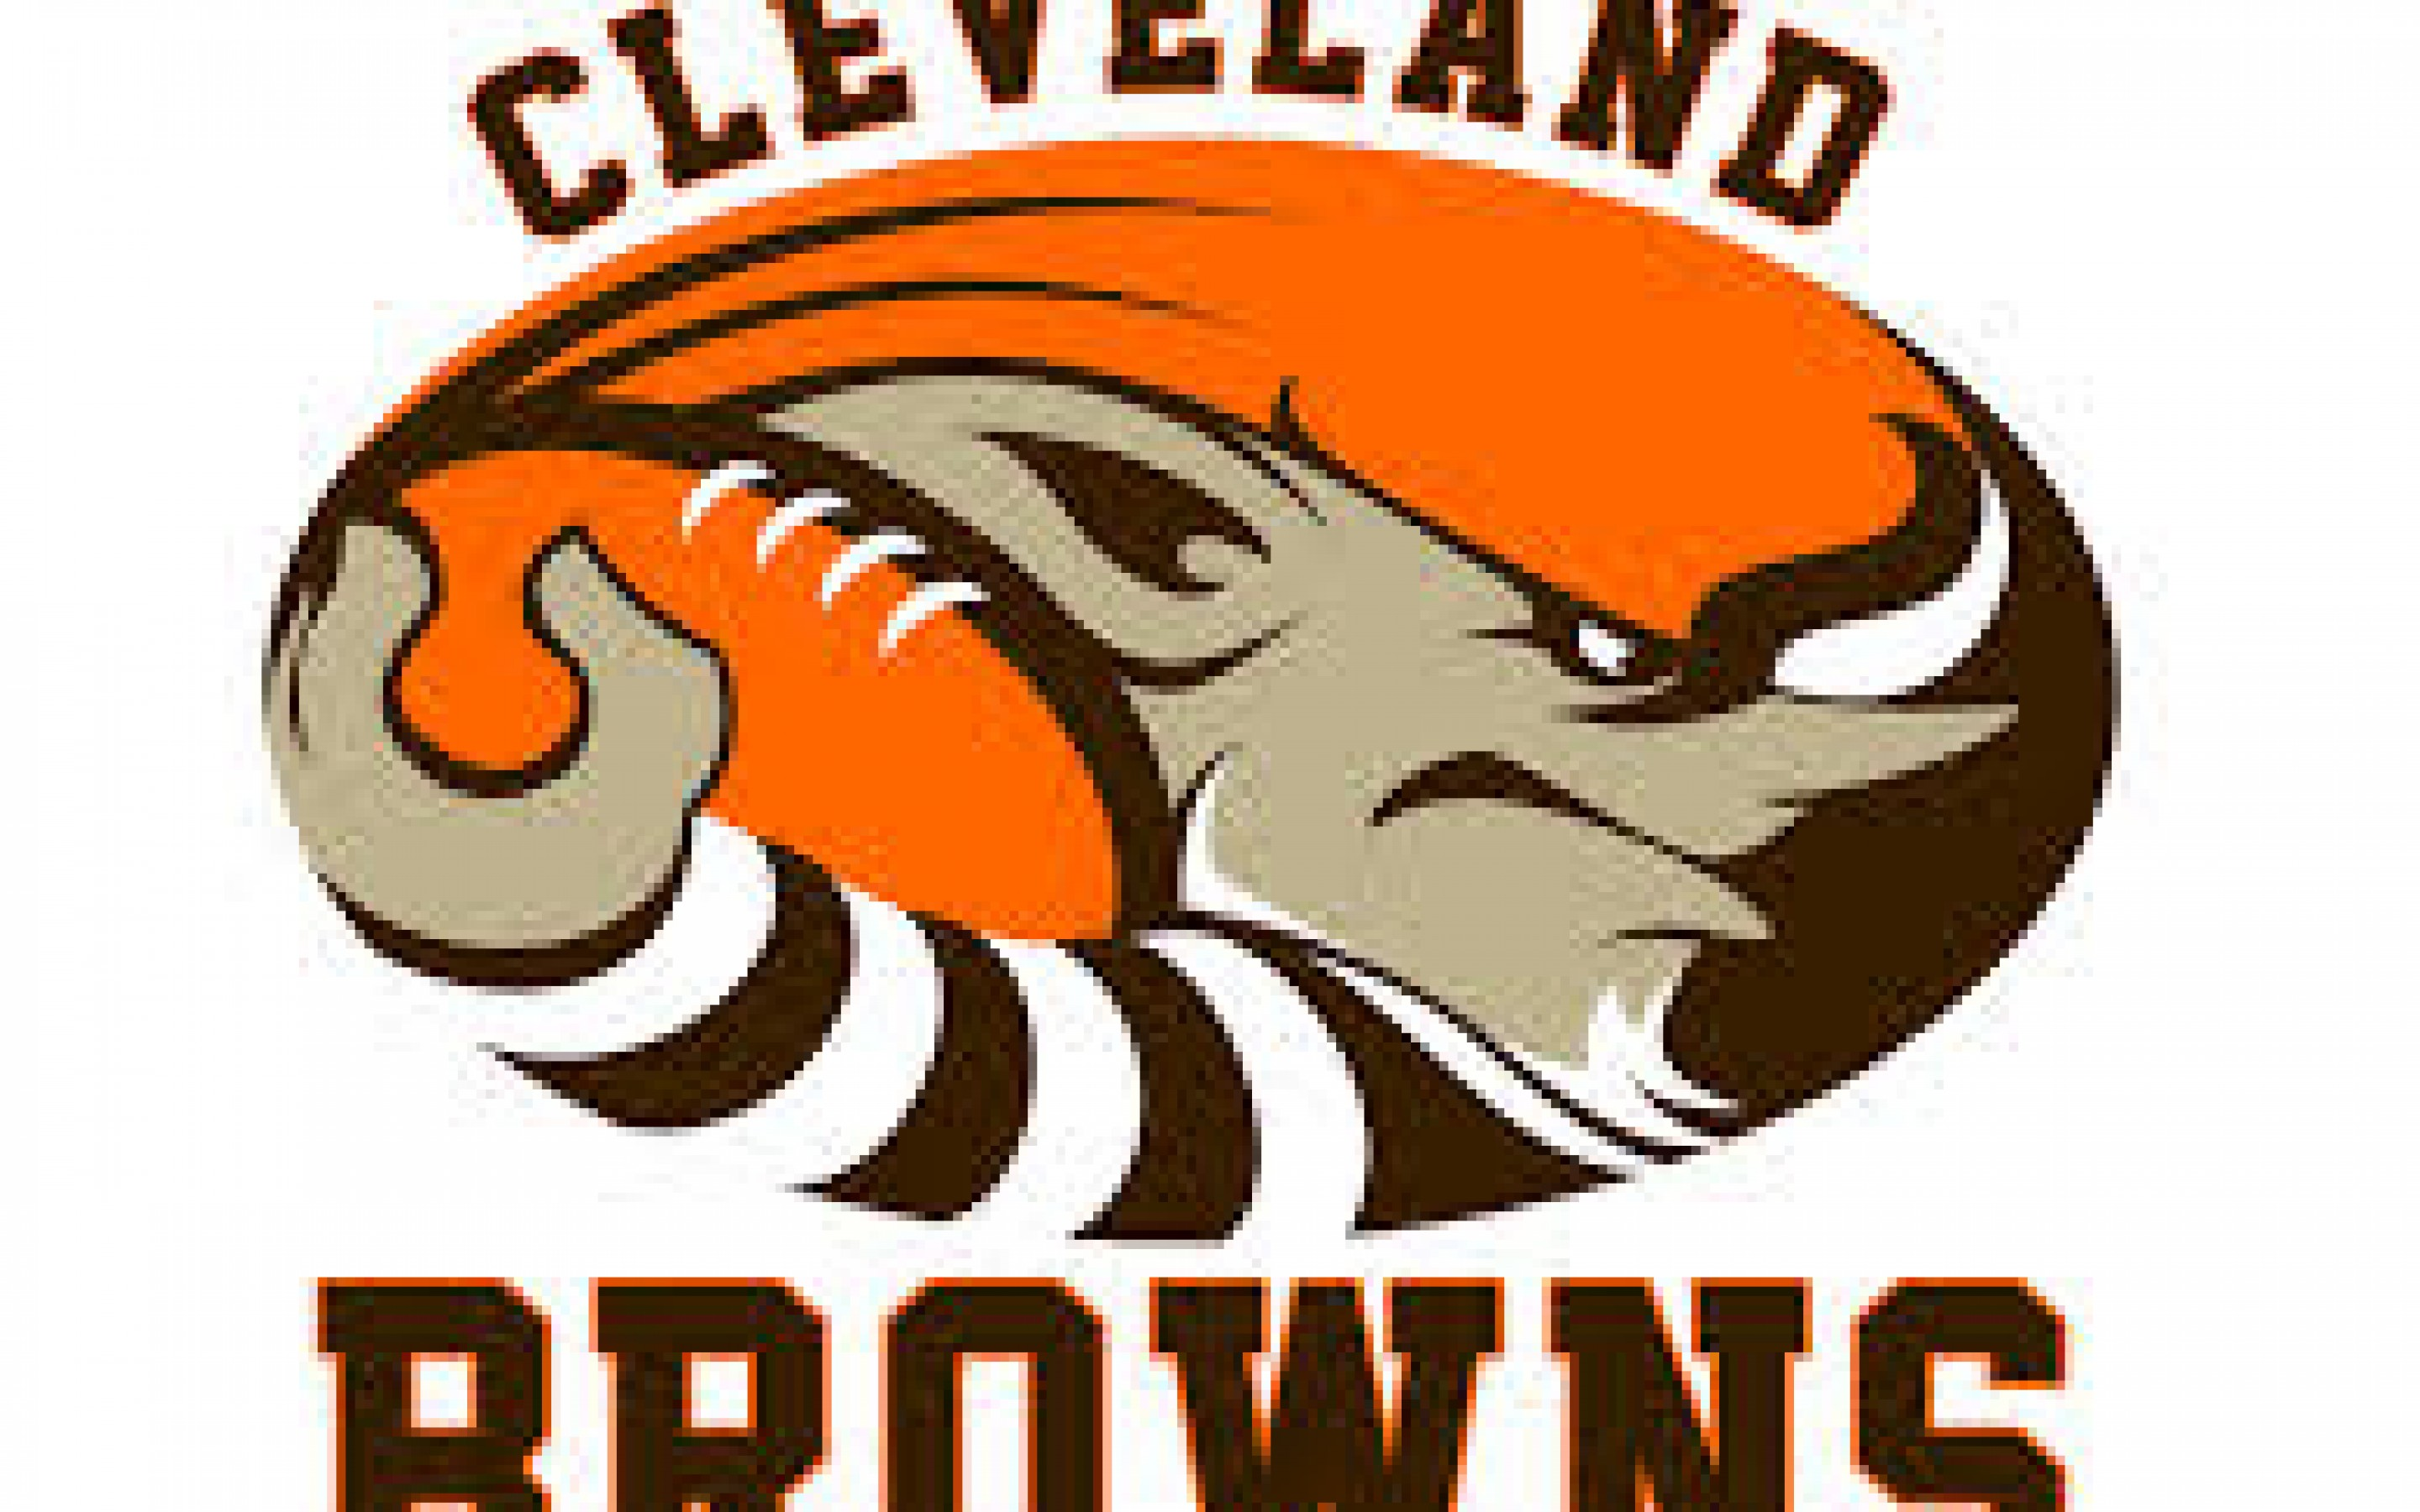 Cleveland Browns Wallpaper 2014 Sky HD Wallpaper 2880x1800